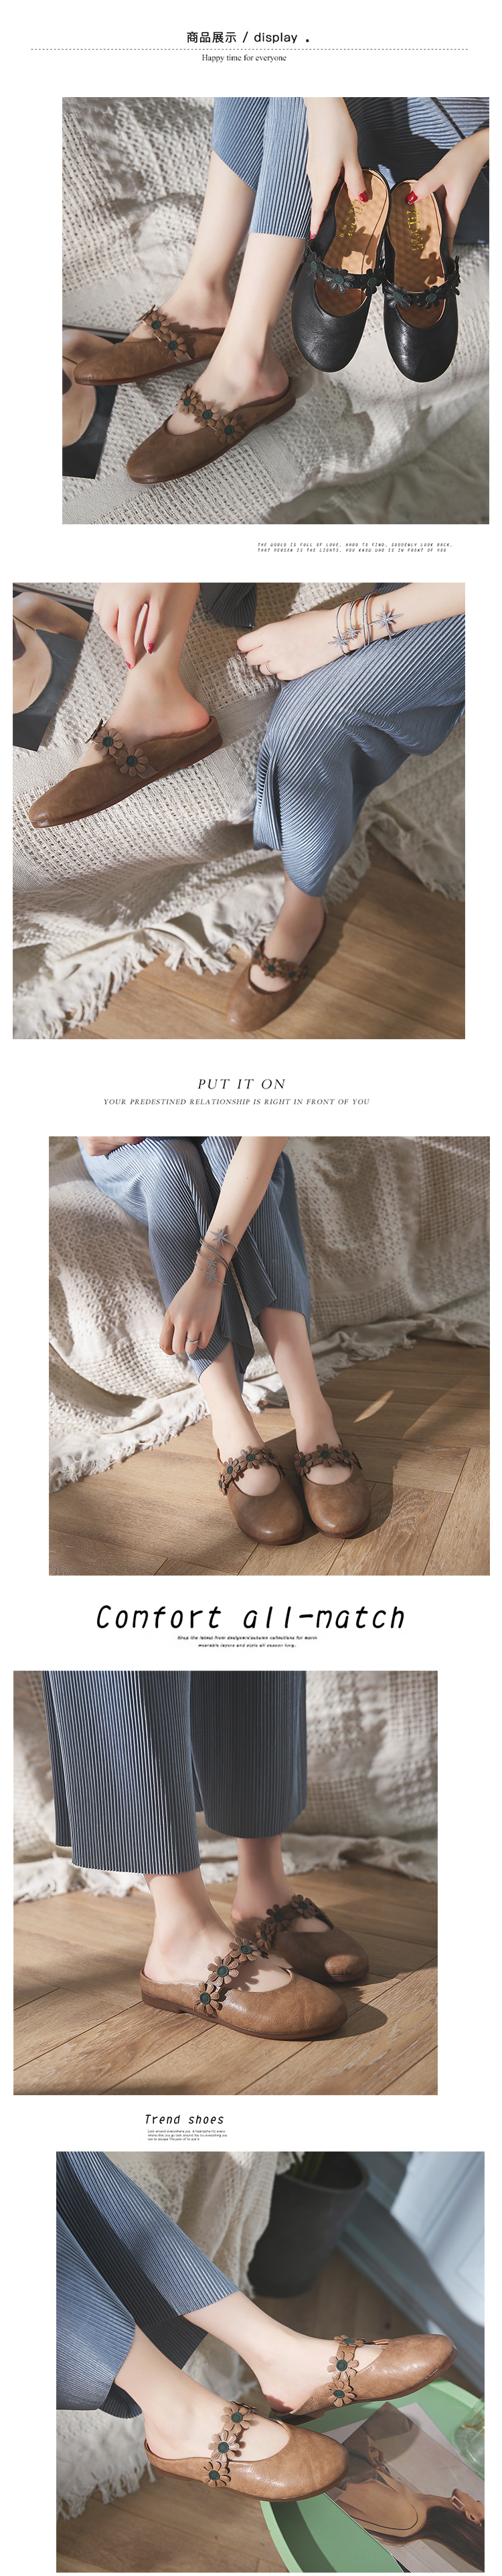 Women's Summer Shoes Baotou 2018 Summer Flower Sexy Sweet Comfortable, Casual Flat Bottomed Women's Leather Shoes6.15 5